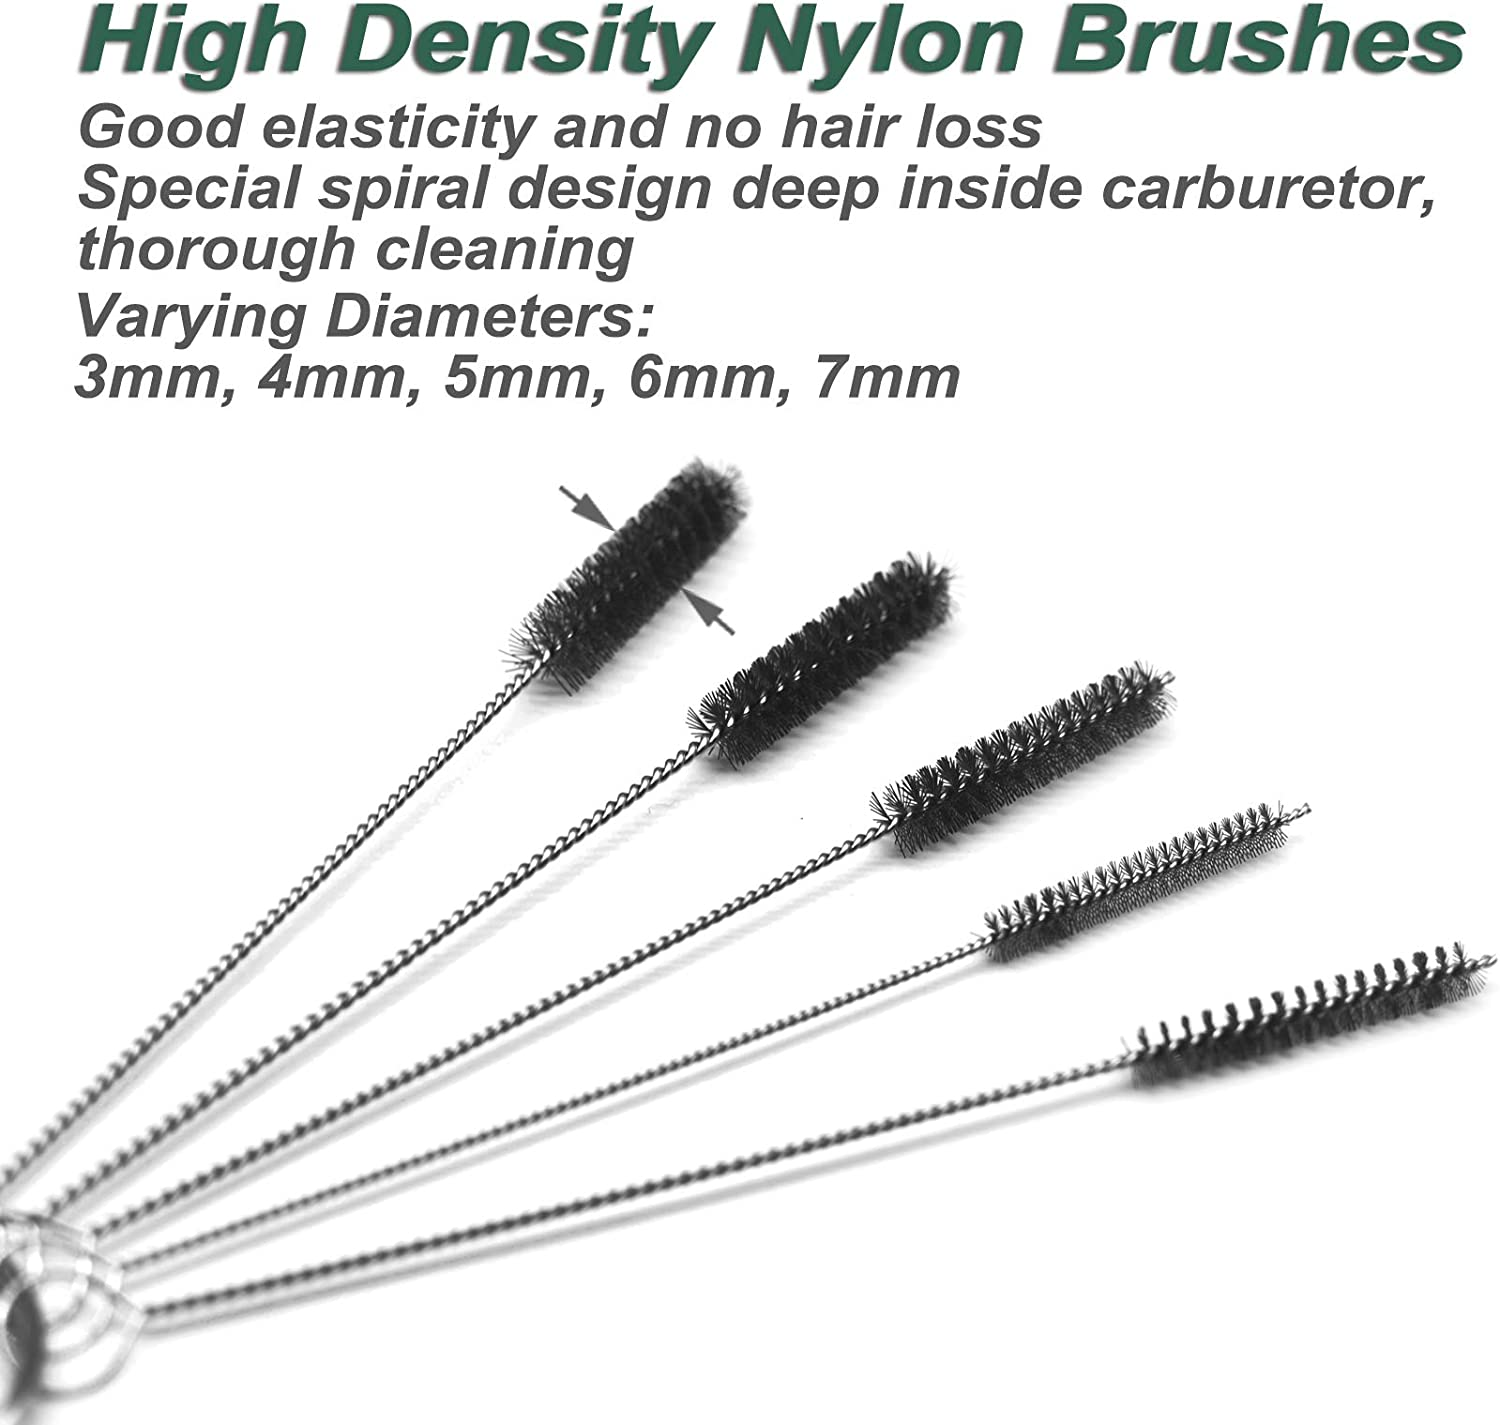 Carburetor Carbon Dirt Jet Remove Cleaner Tool Kit 10 Cleaning Needles with 5 Brushes for Car, Outboard Motor, ATV, Motorcycle Carb Jets: Automotive